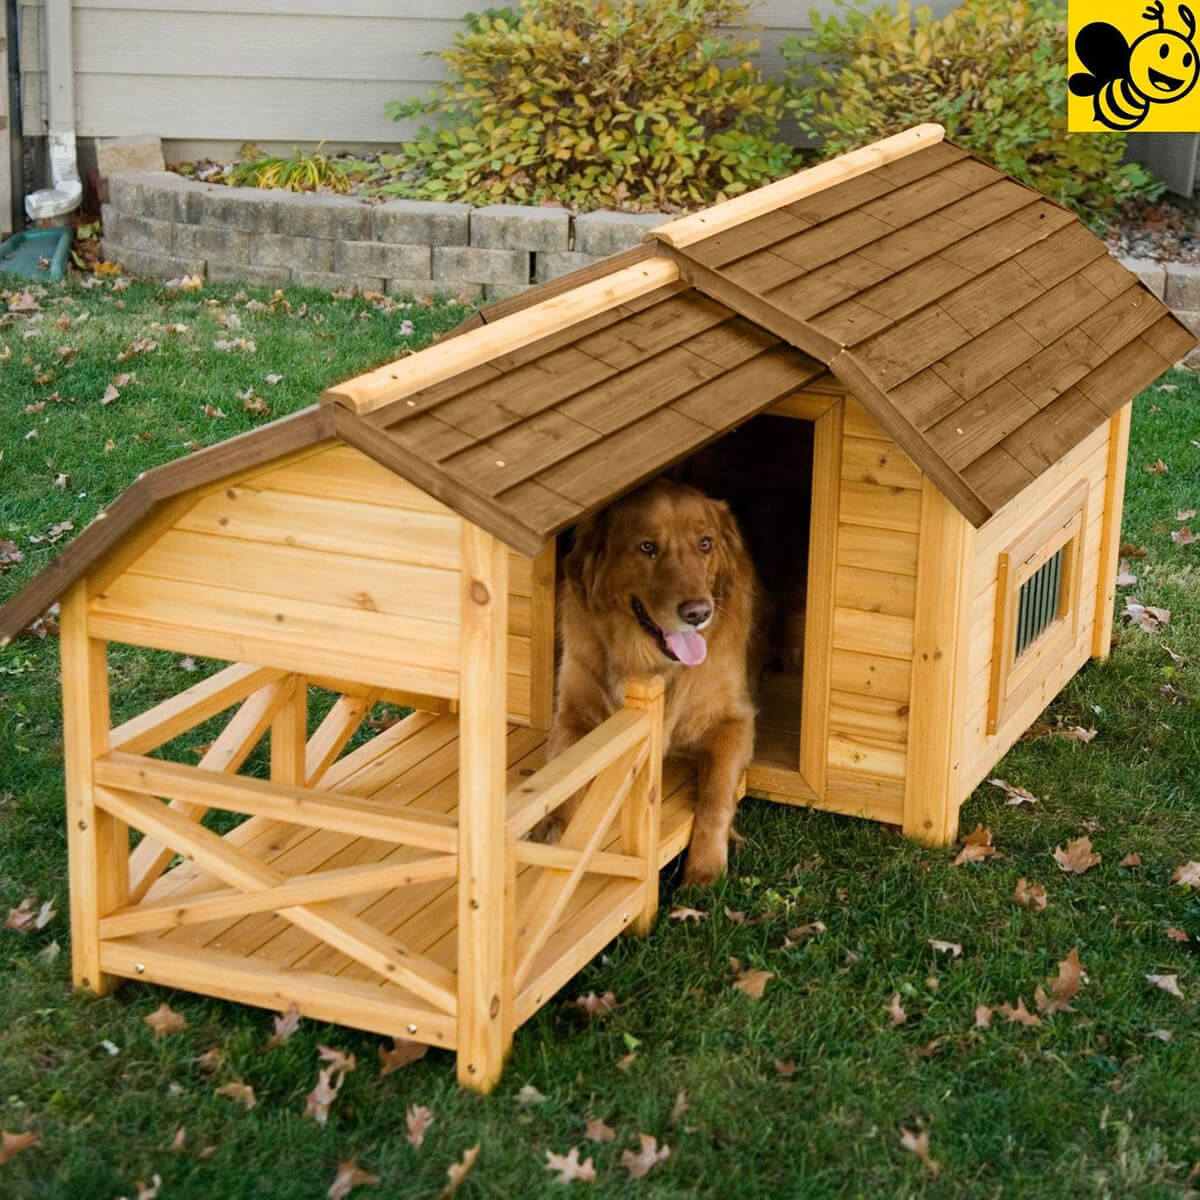 Lovely Dog Home with Covered Porch